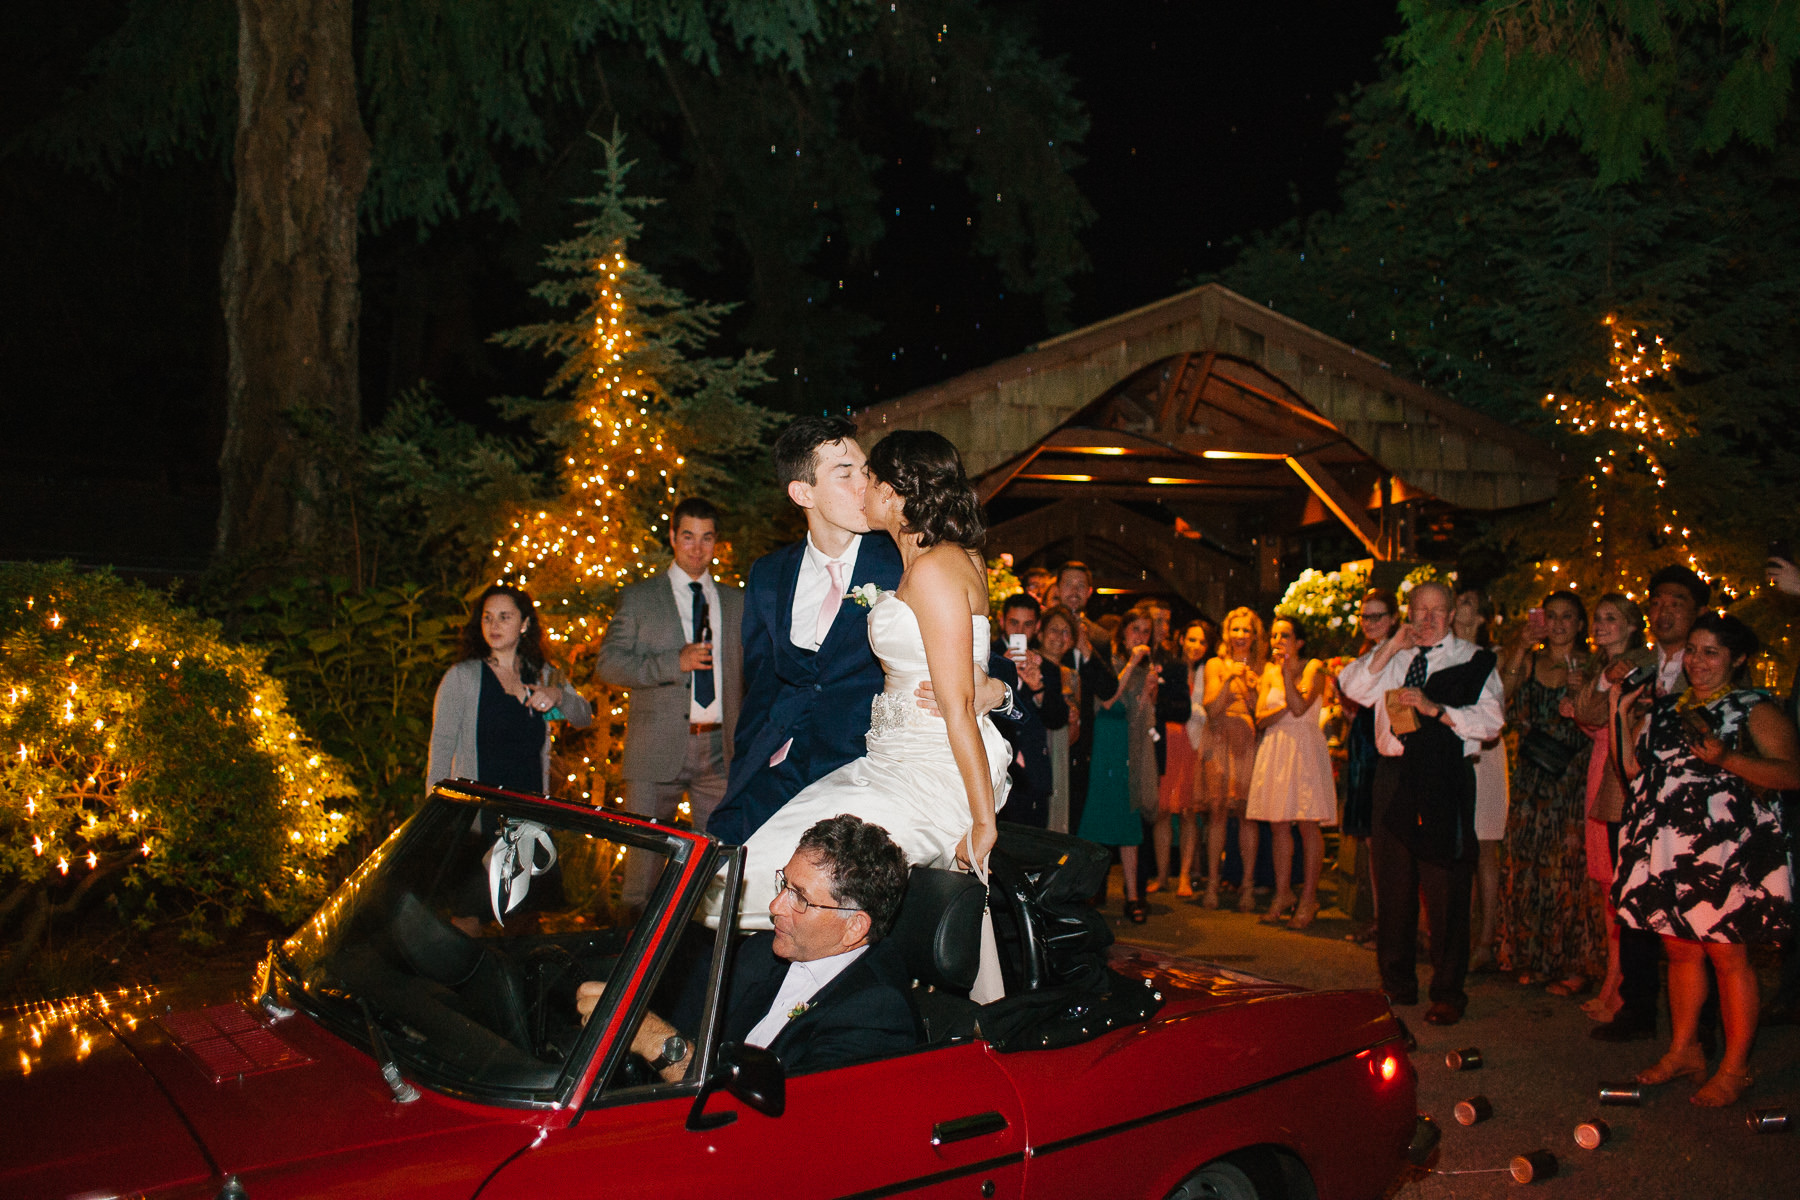 Candid moments at an elegant Kiana Lodge wedding captured by Anna Peters